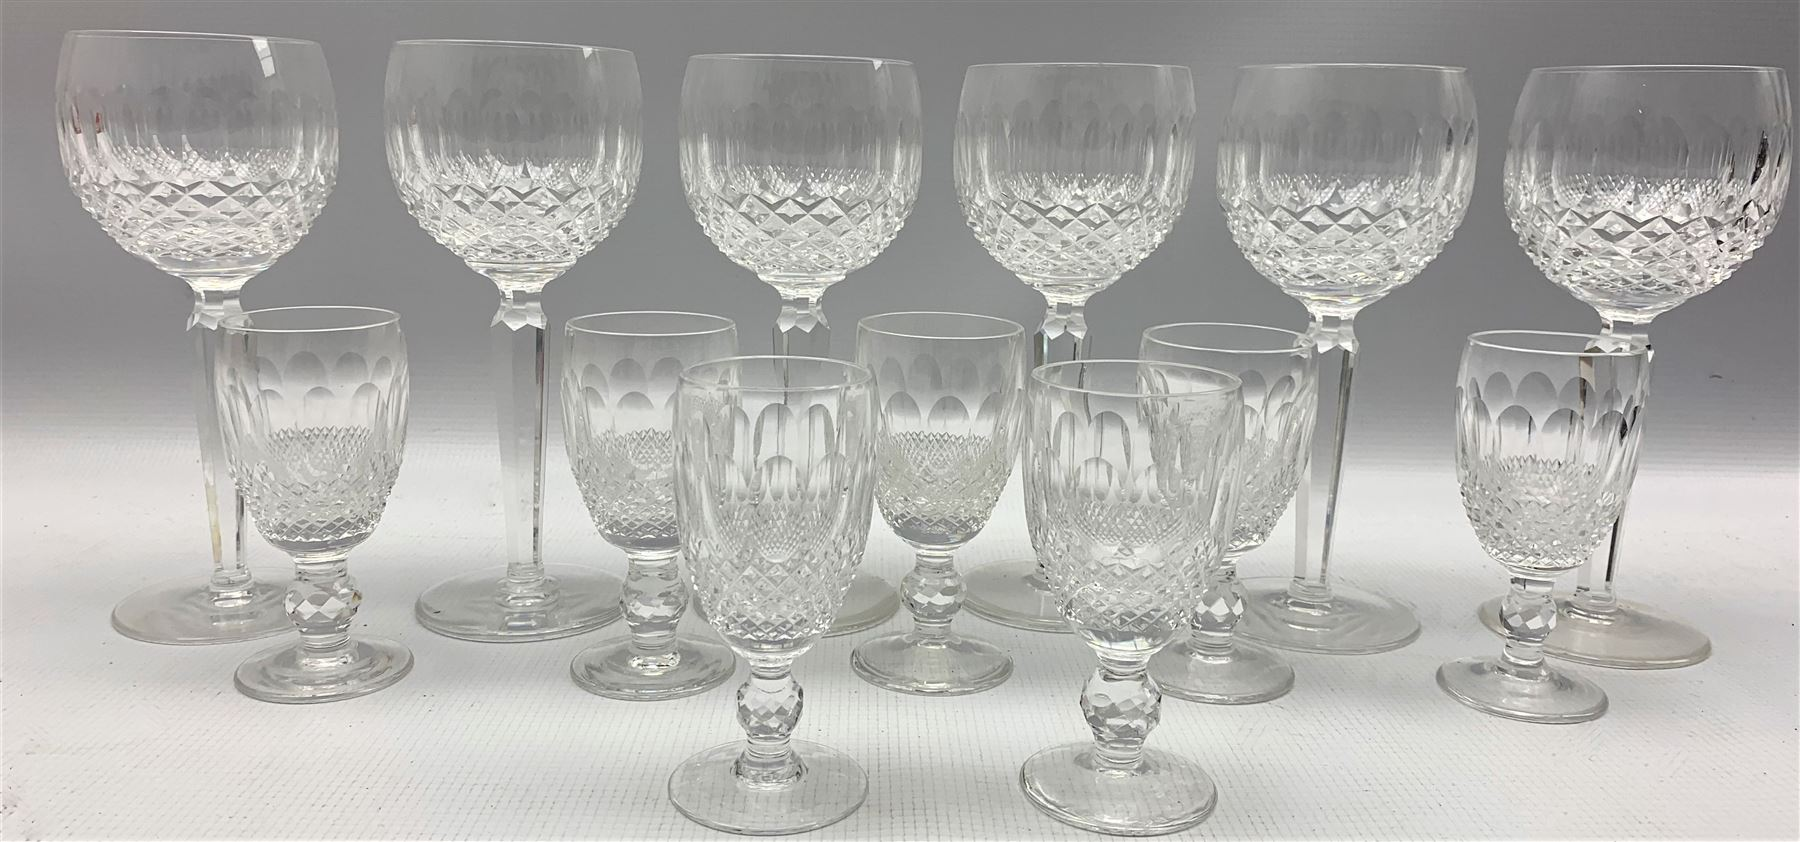 Set of six Waterford Colleen pattern wine glasses and seven matching sherry glasses - Image 2 of 2